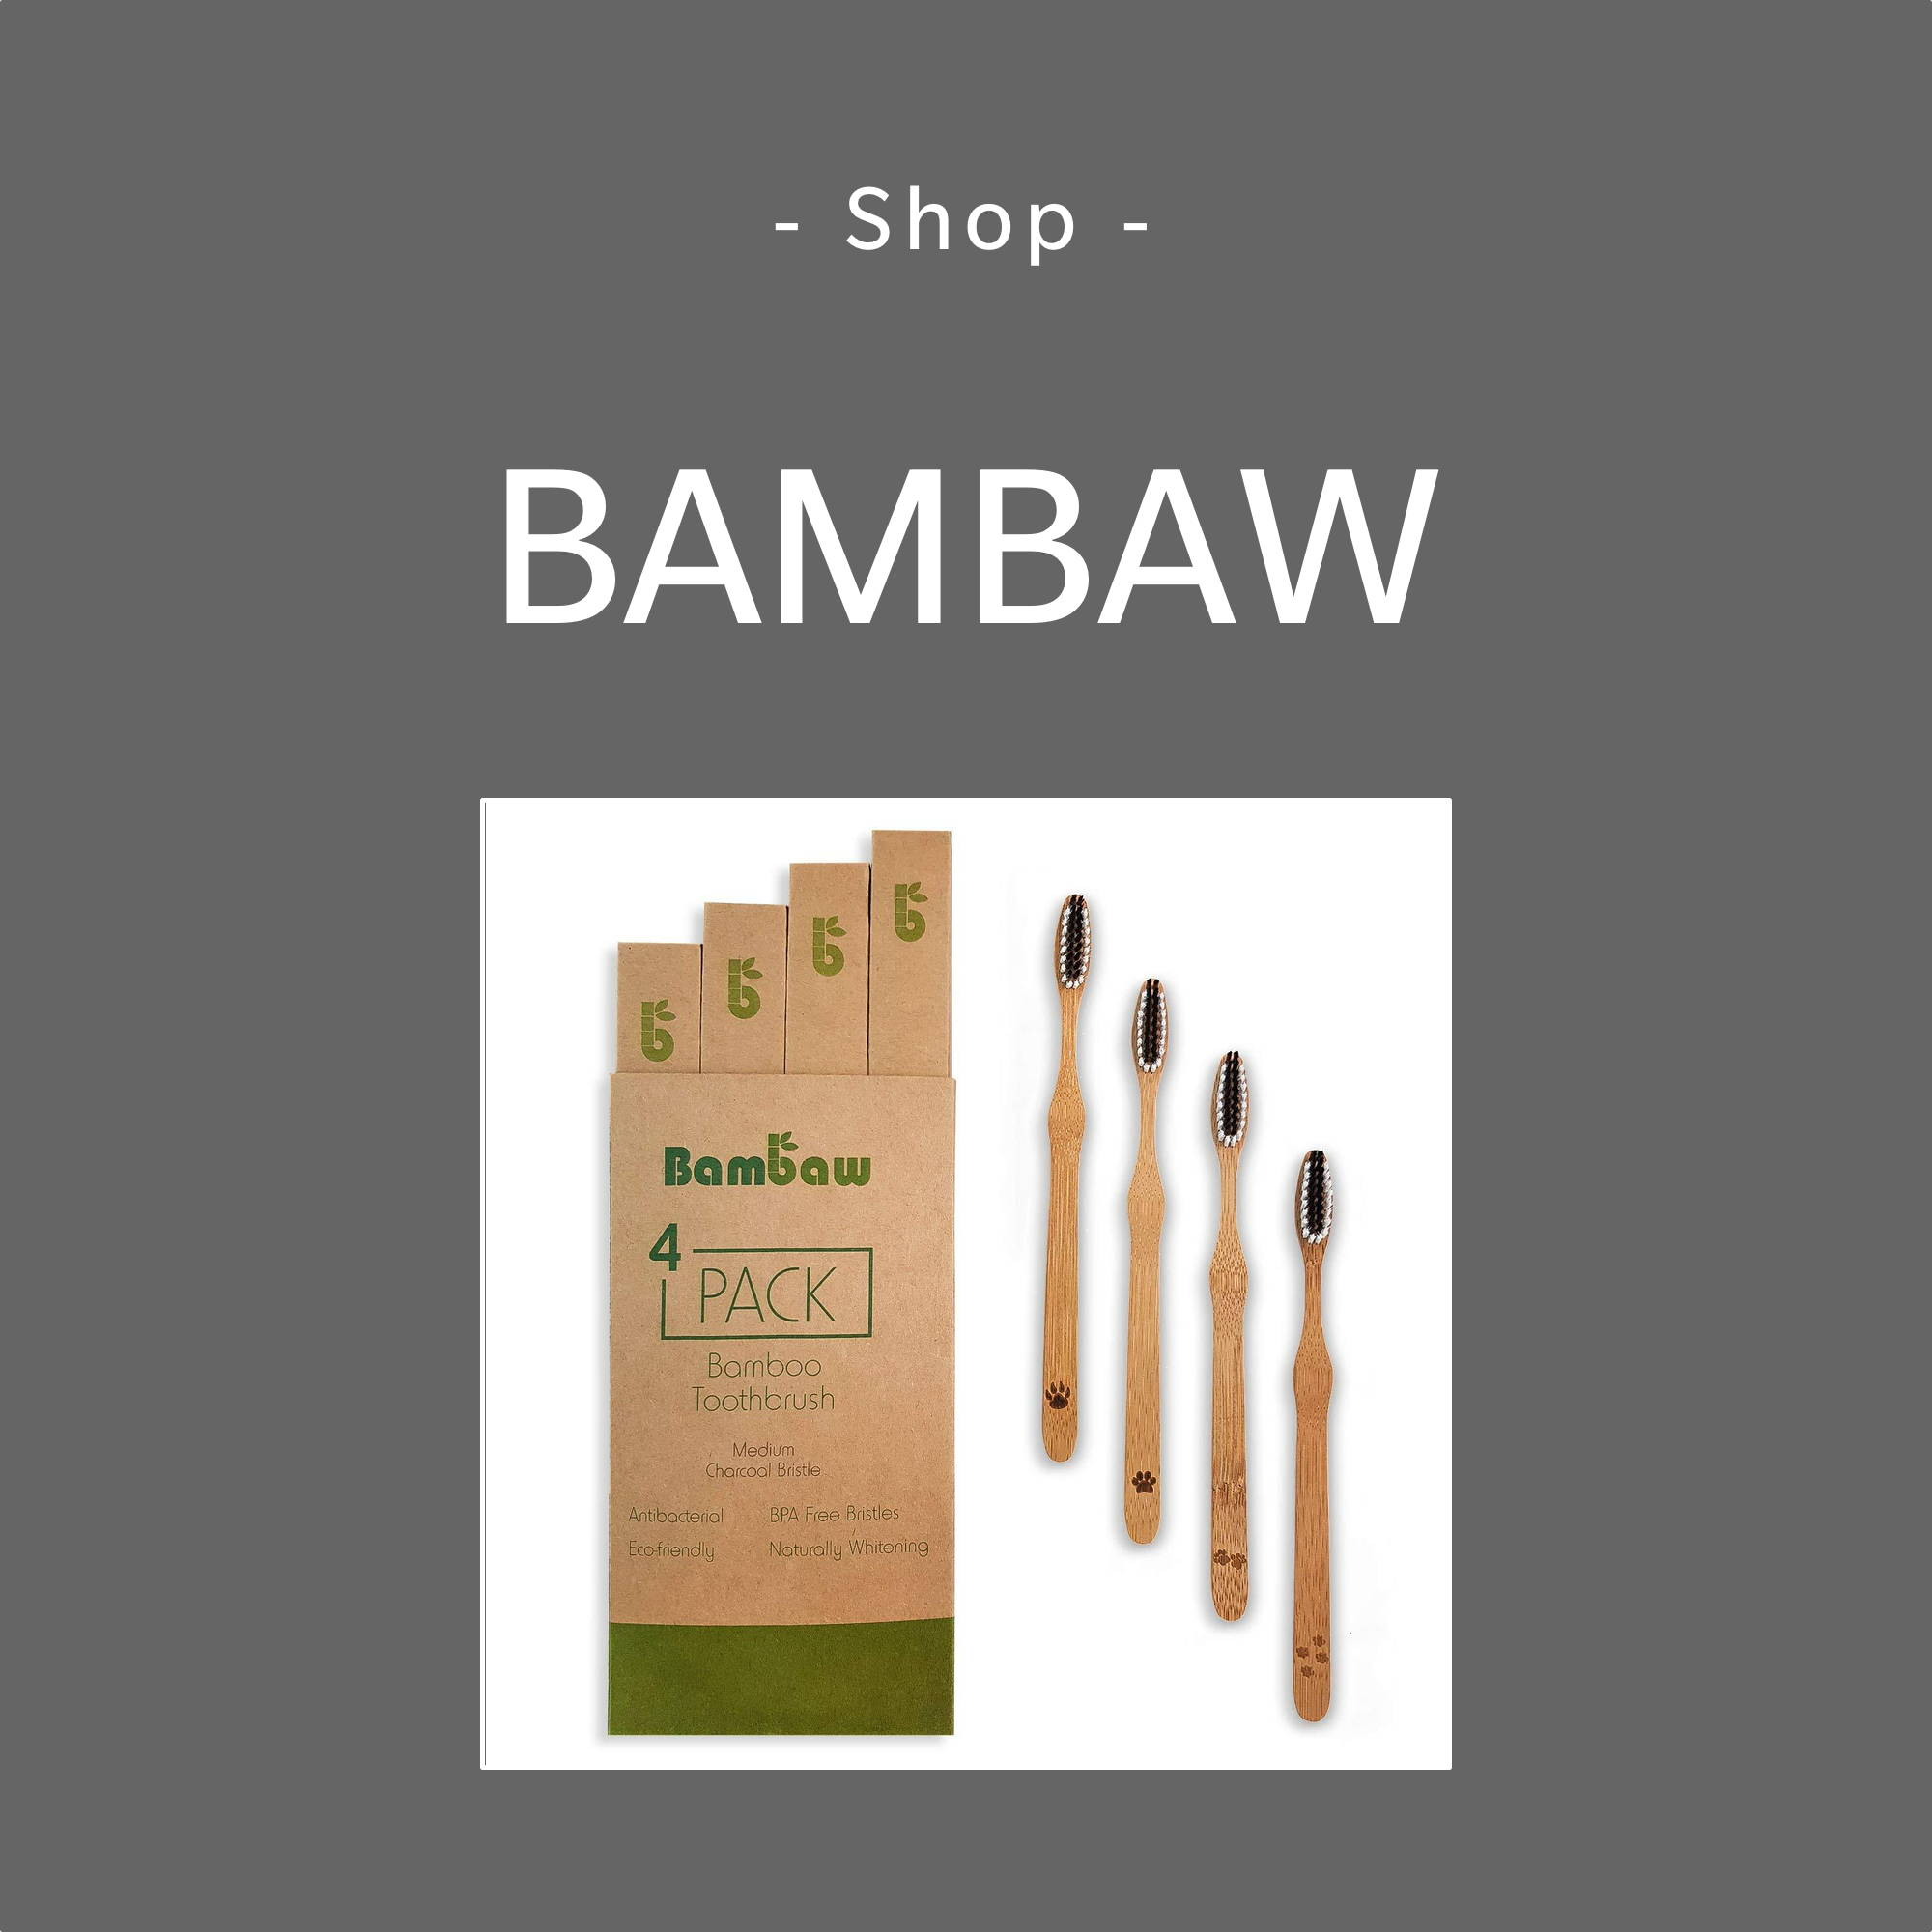 Bambaw Brand Page